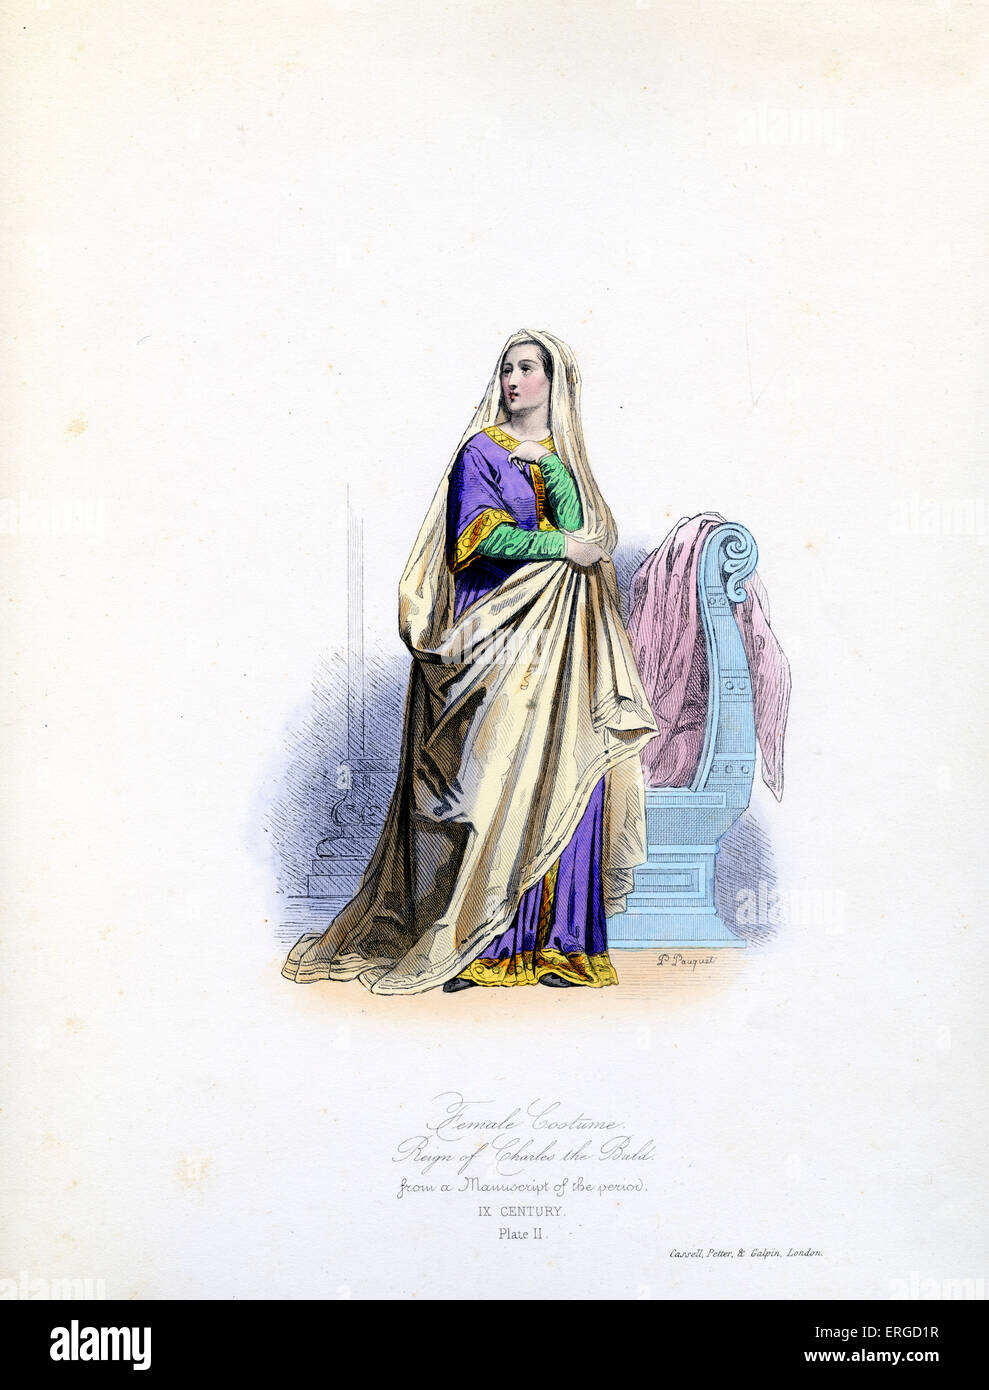 9th century female costume, from  reign of Charles the Bald. From engraving by Polidor Pauquet after original manuscript. - Stock Image